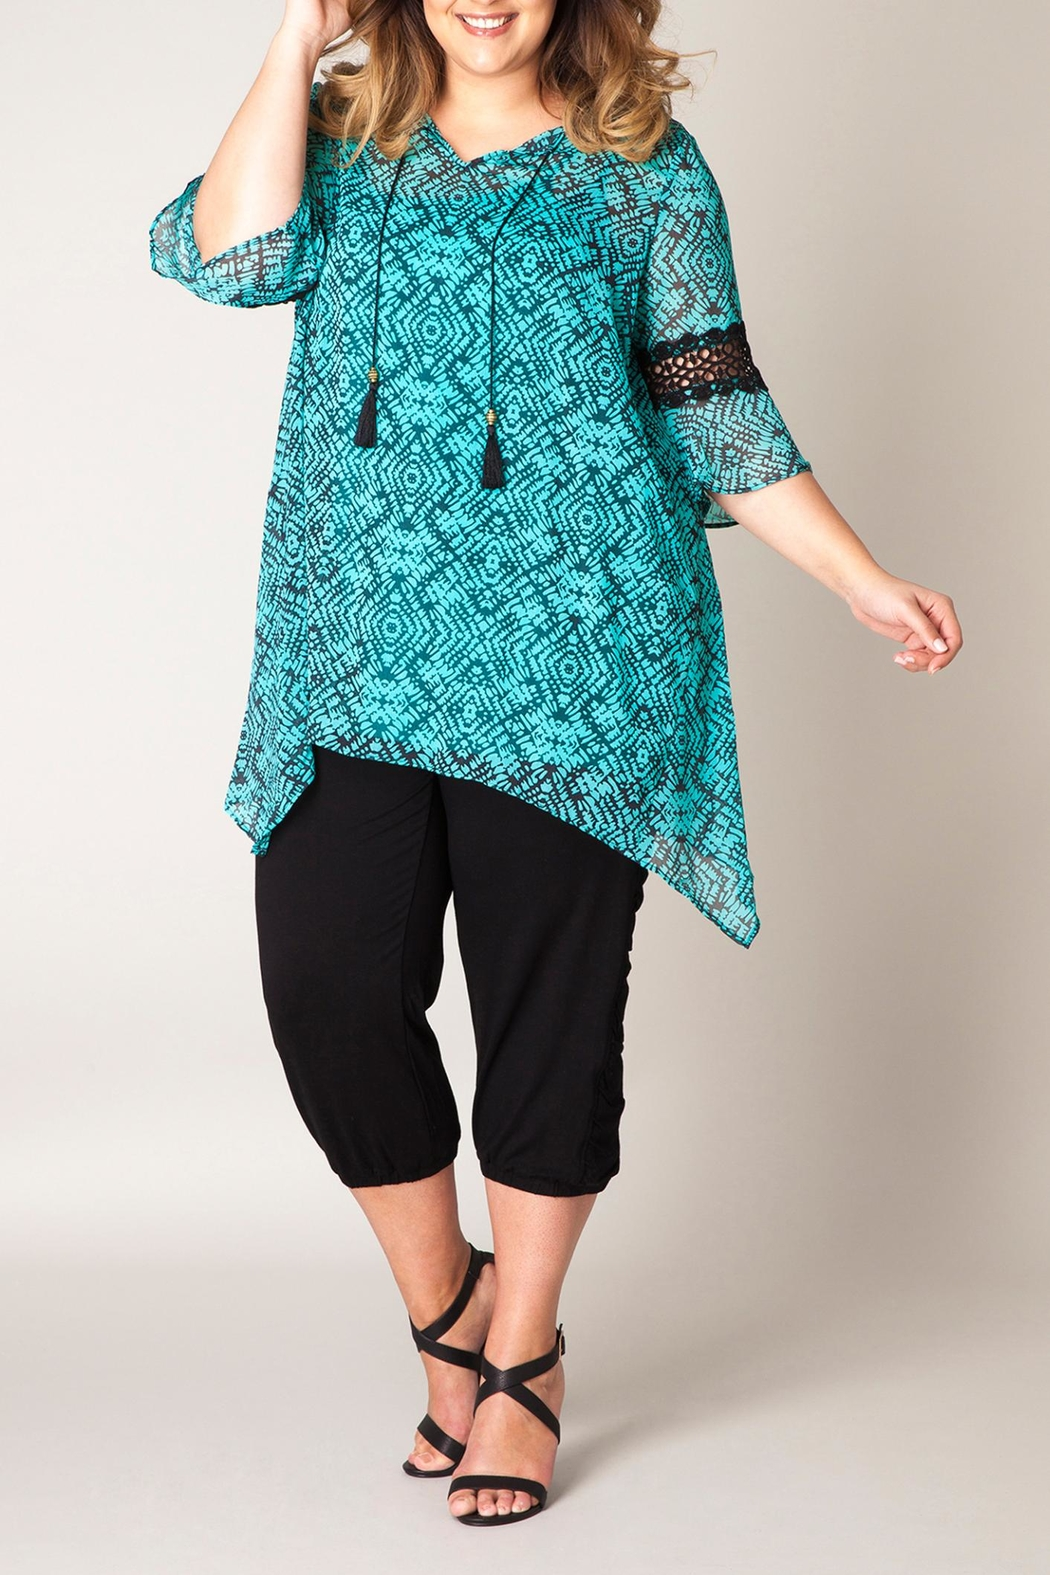 Yest Printed Tunic Top - Main Image